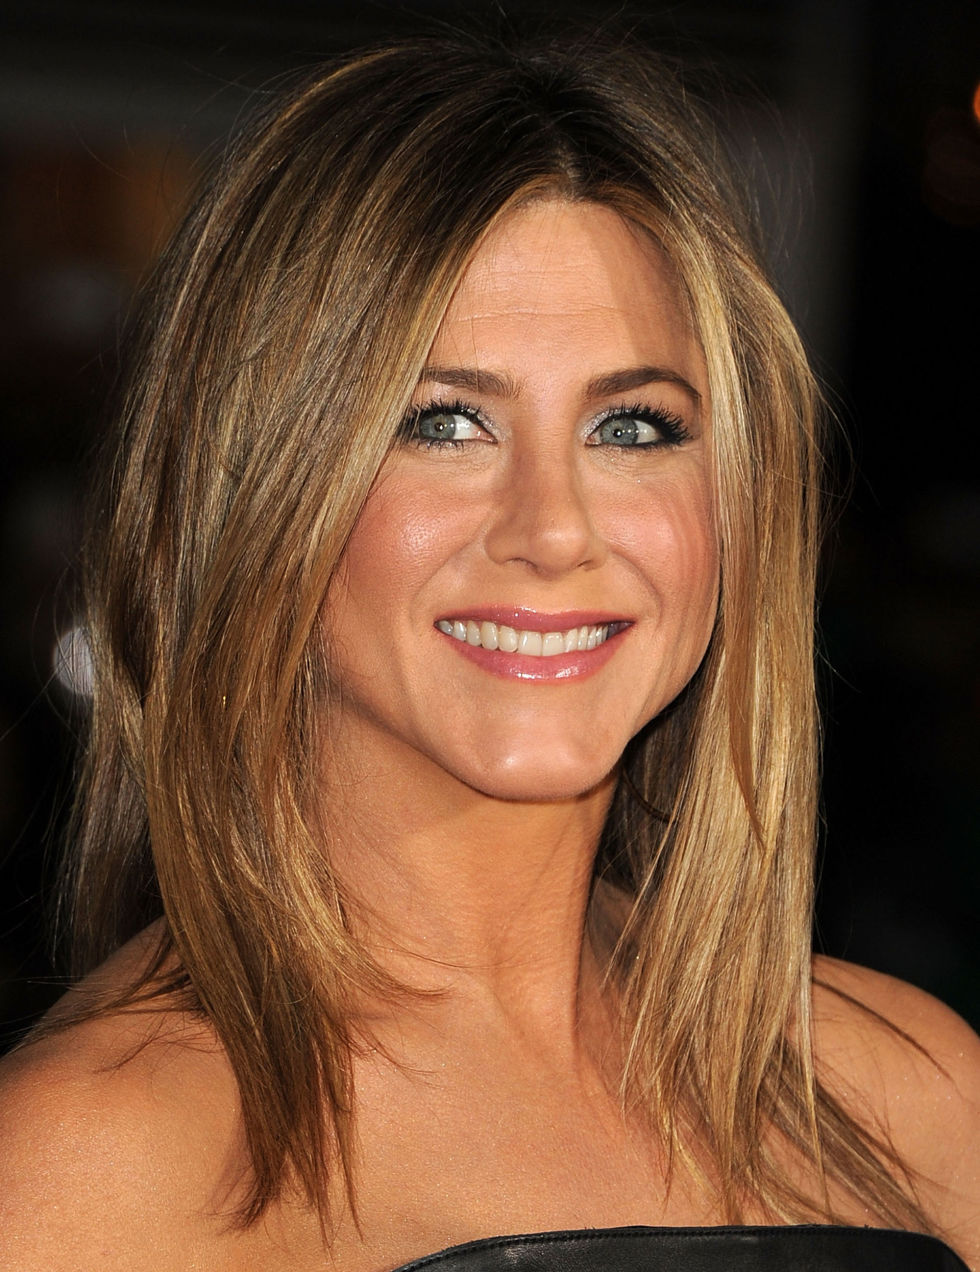 Jennifer Aniston's Best Beauty Tricks - 548995514f15a_-_rbk-jennifer-aniston-beauty-0913-1-s2